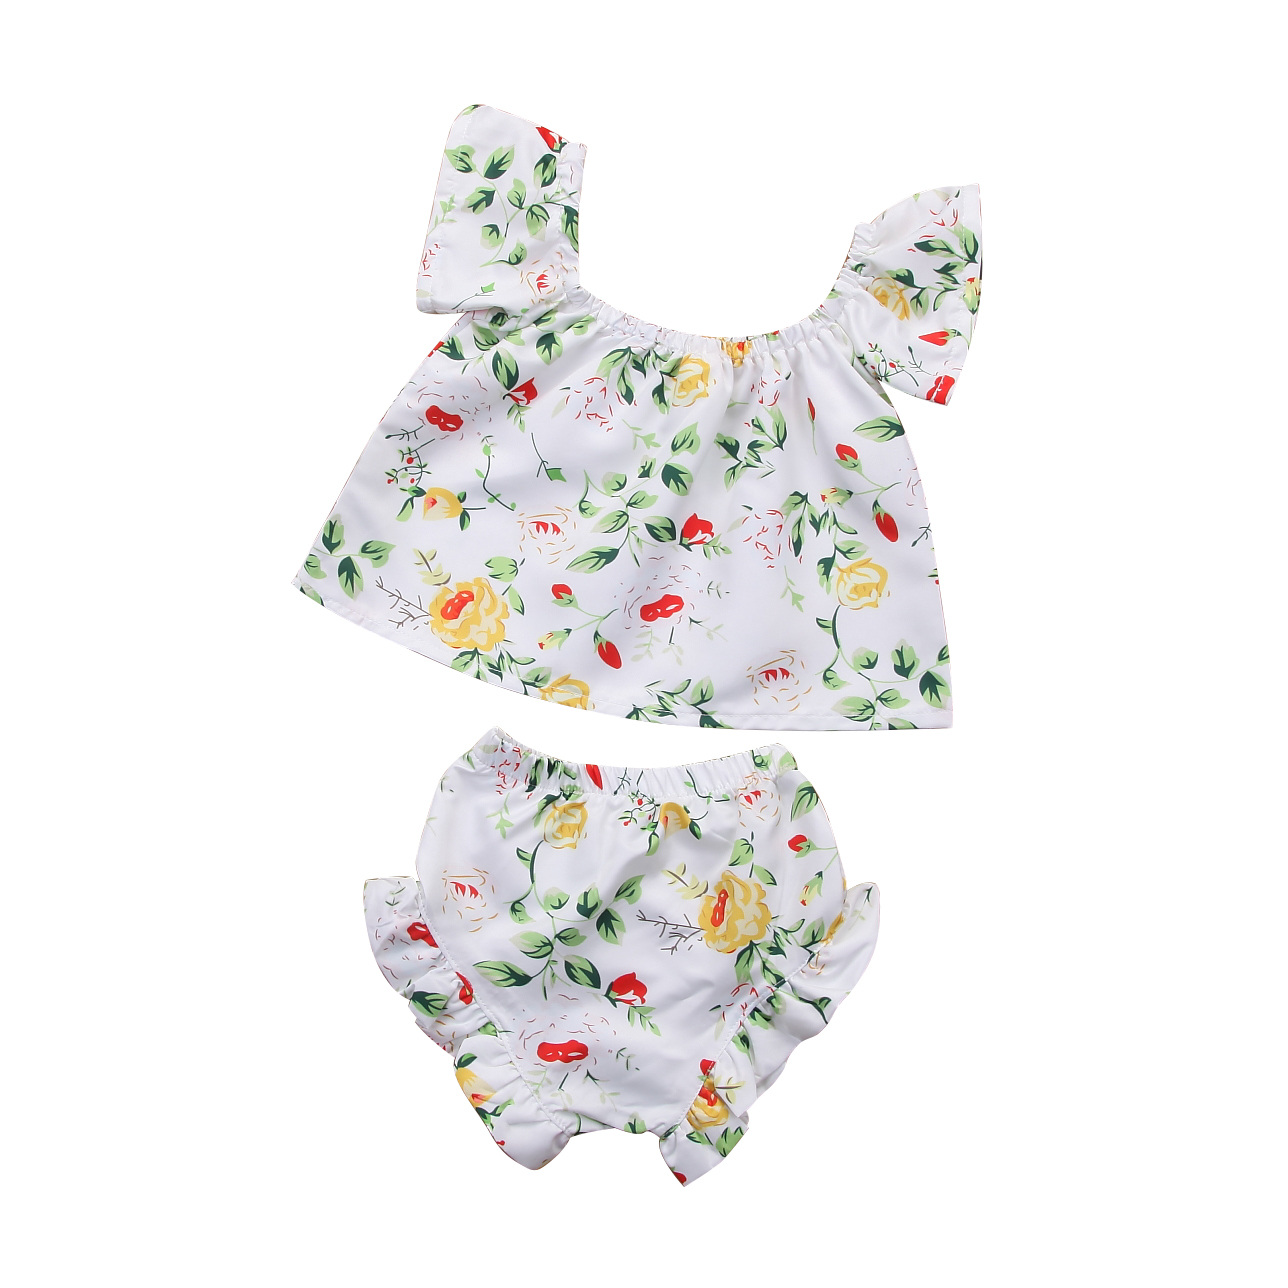 Hot sell Toddler Infant Baby Girls Clothes Sleeveless Floral Princess Off Shoulder Tops Shorts Clothes